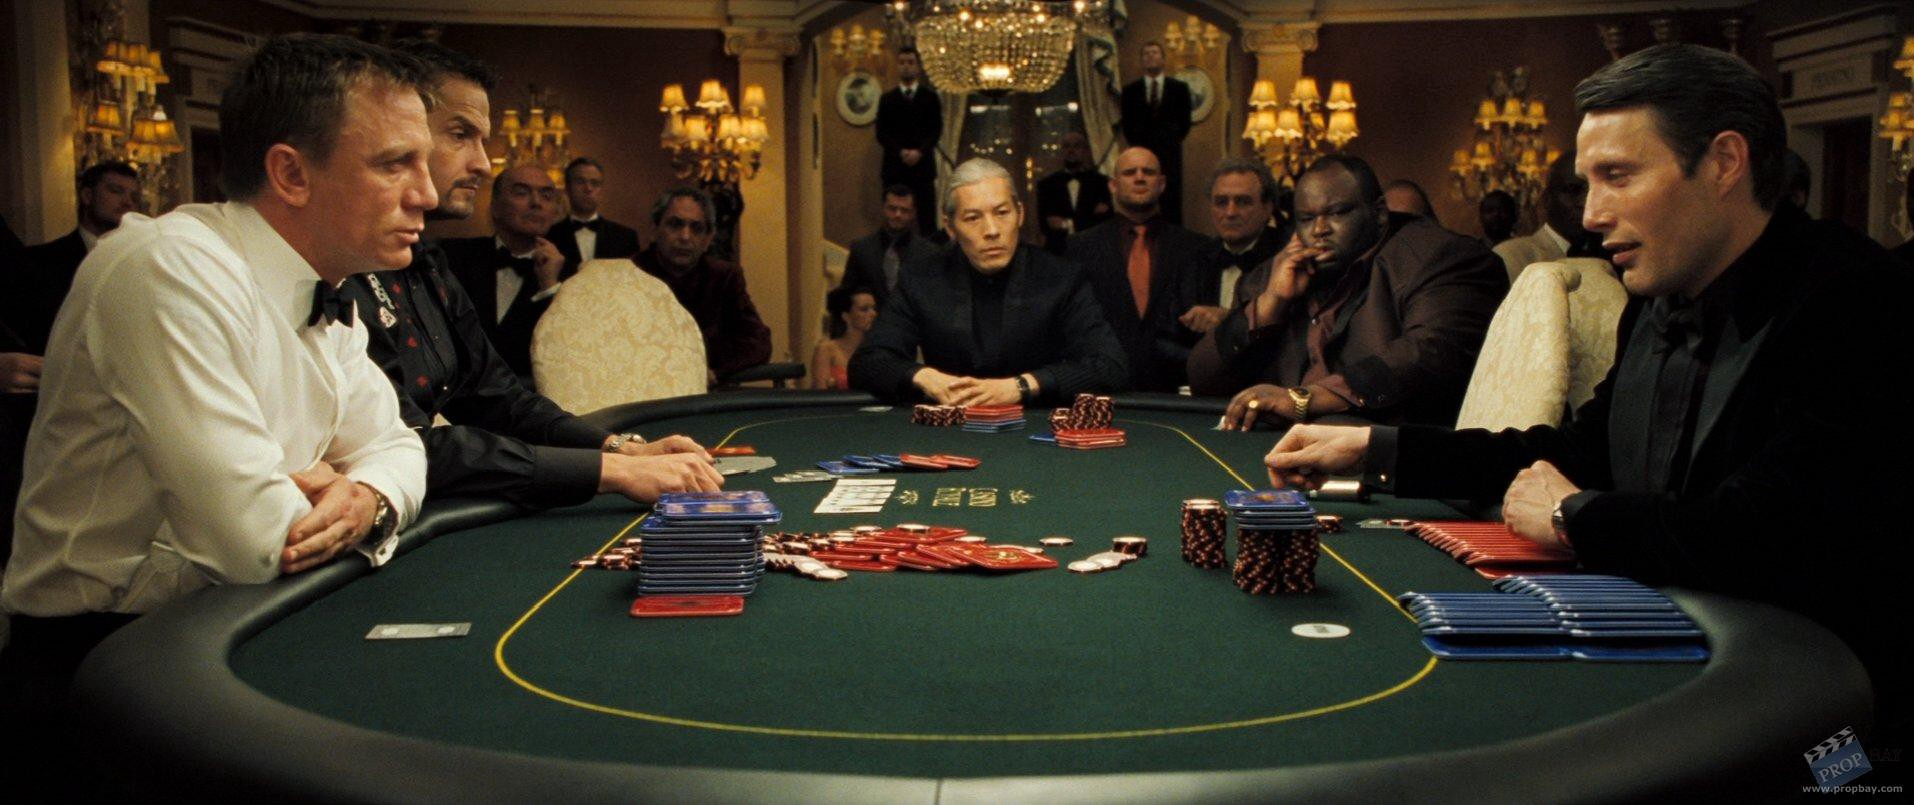 Life Is Poker And It S Your Turn To Play By Diego Oliveira Sanchez Mission Org Medium